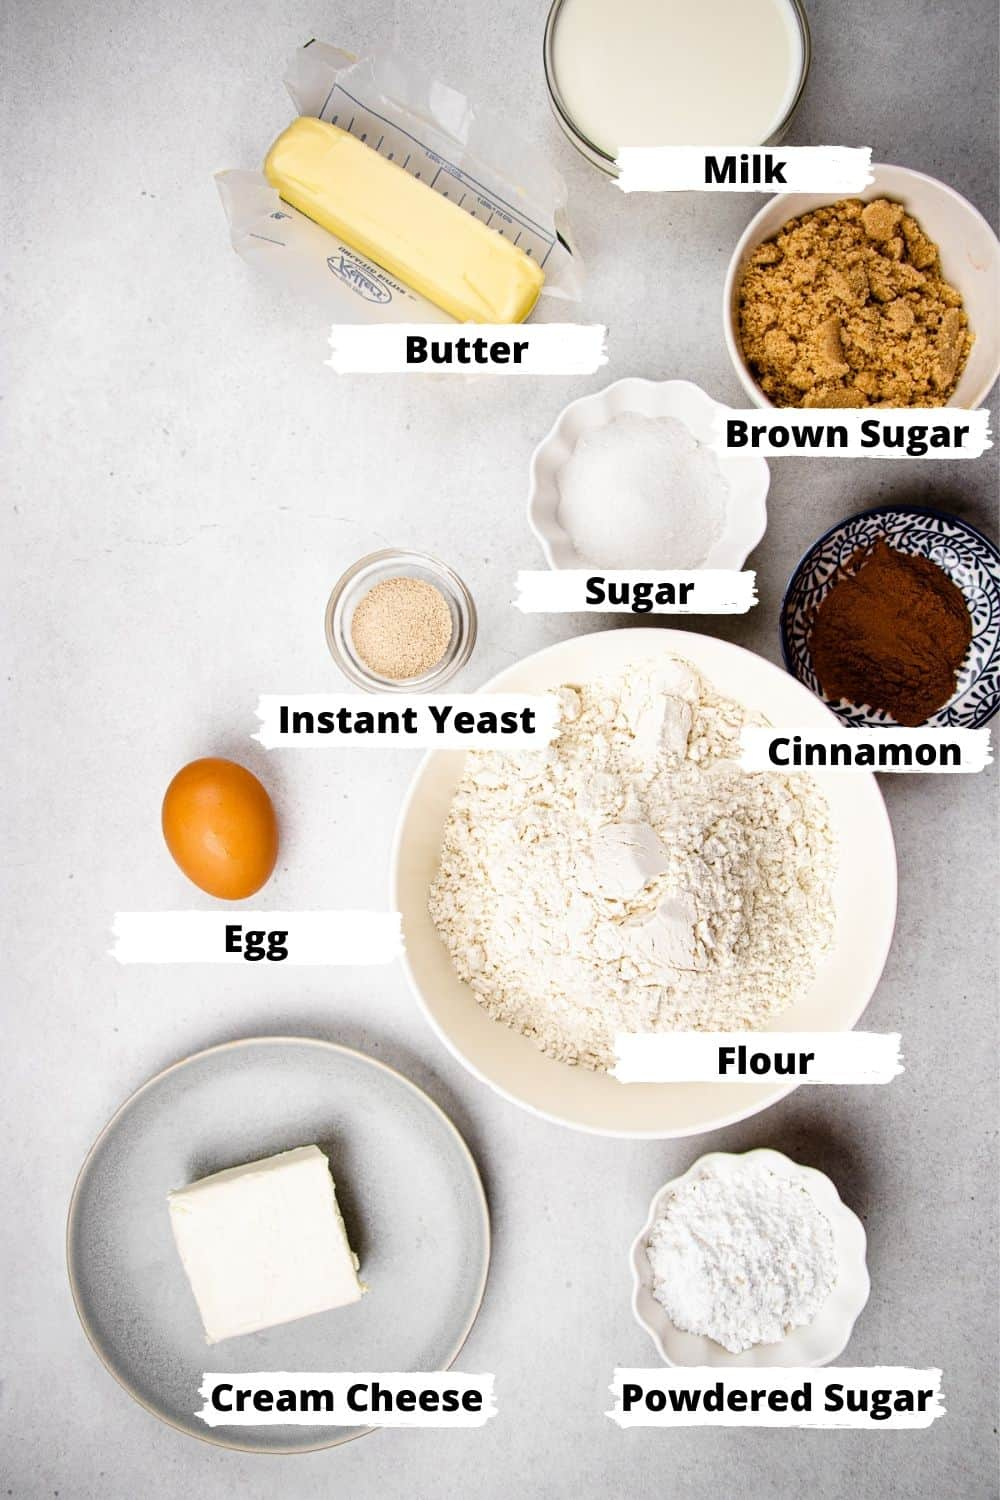 Ingredients for Overnight Cinnamon Rolls.